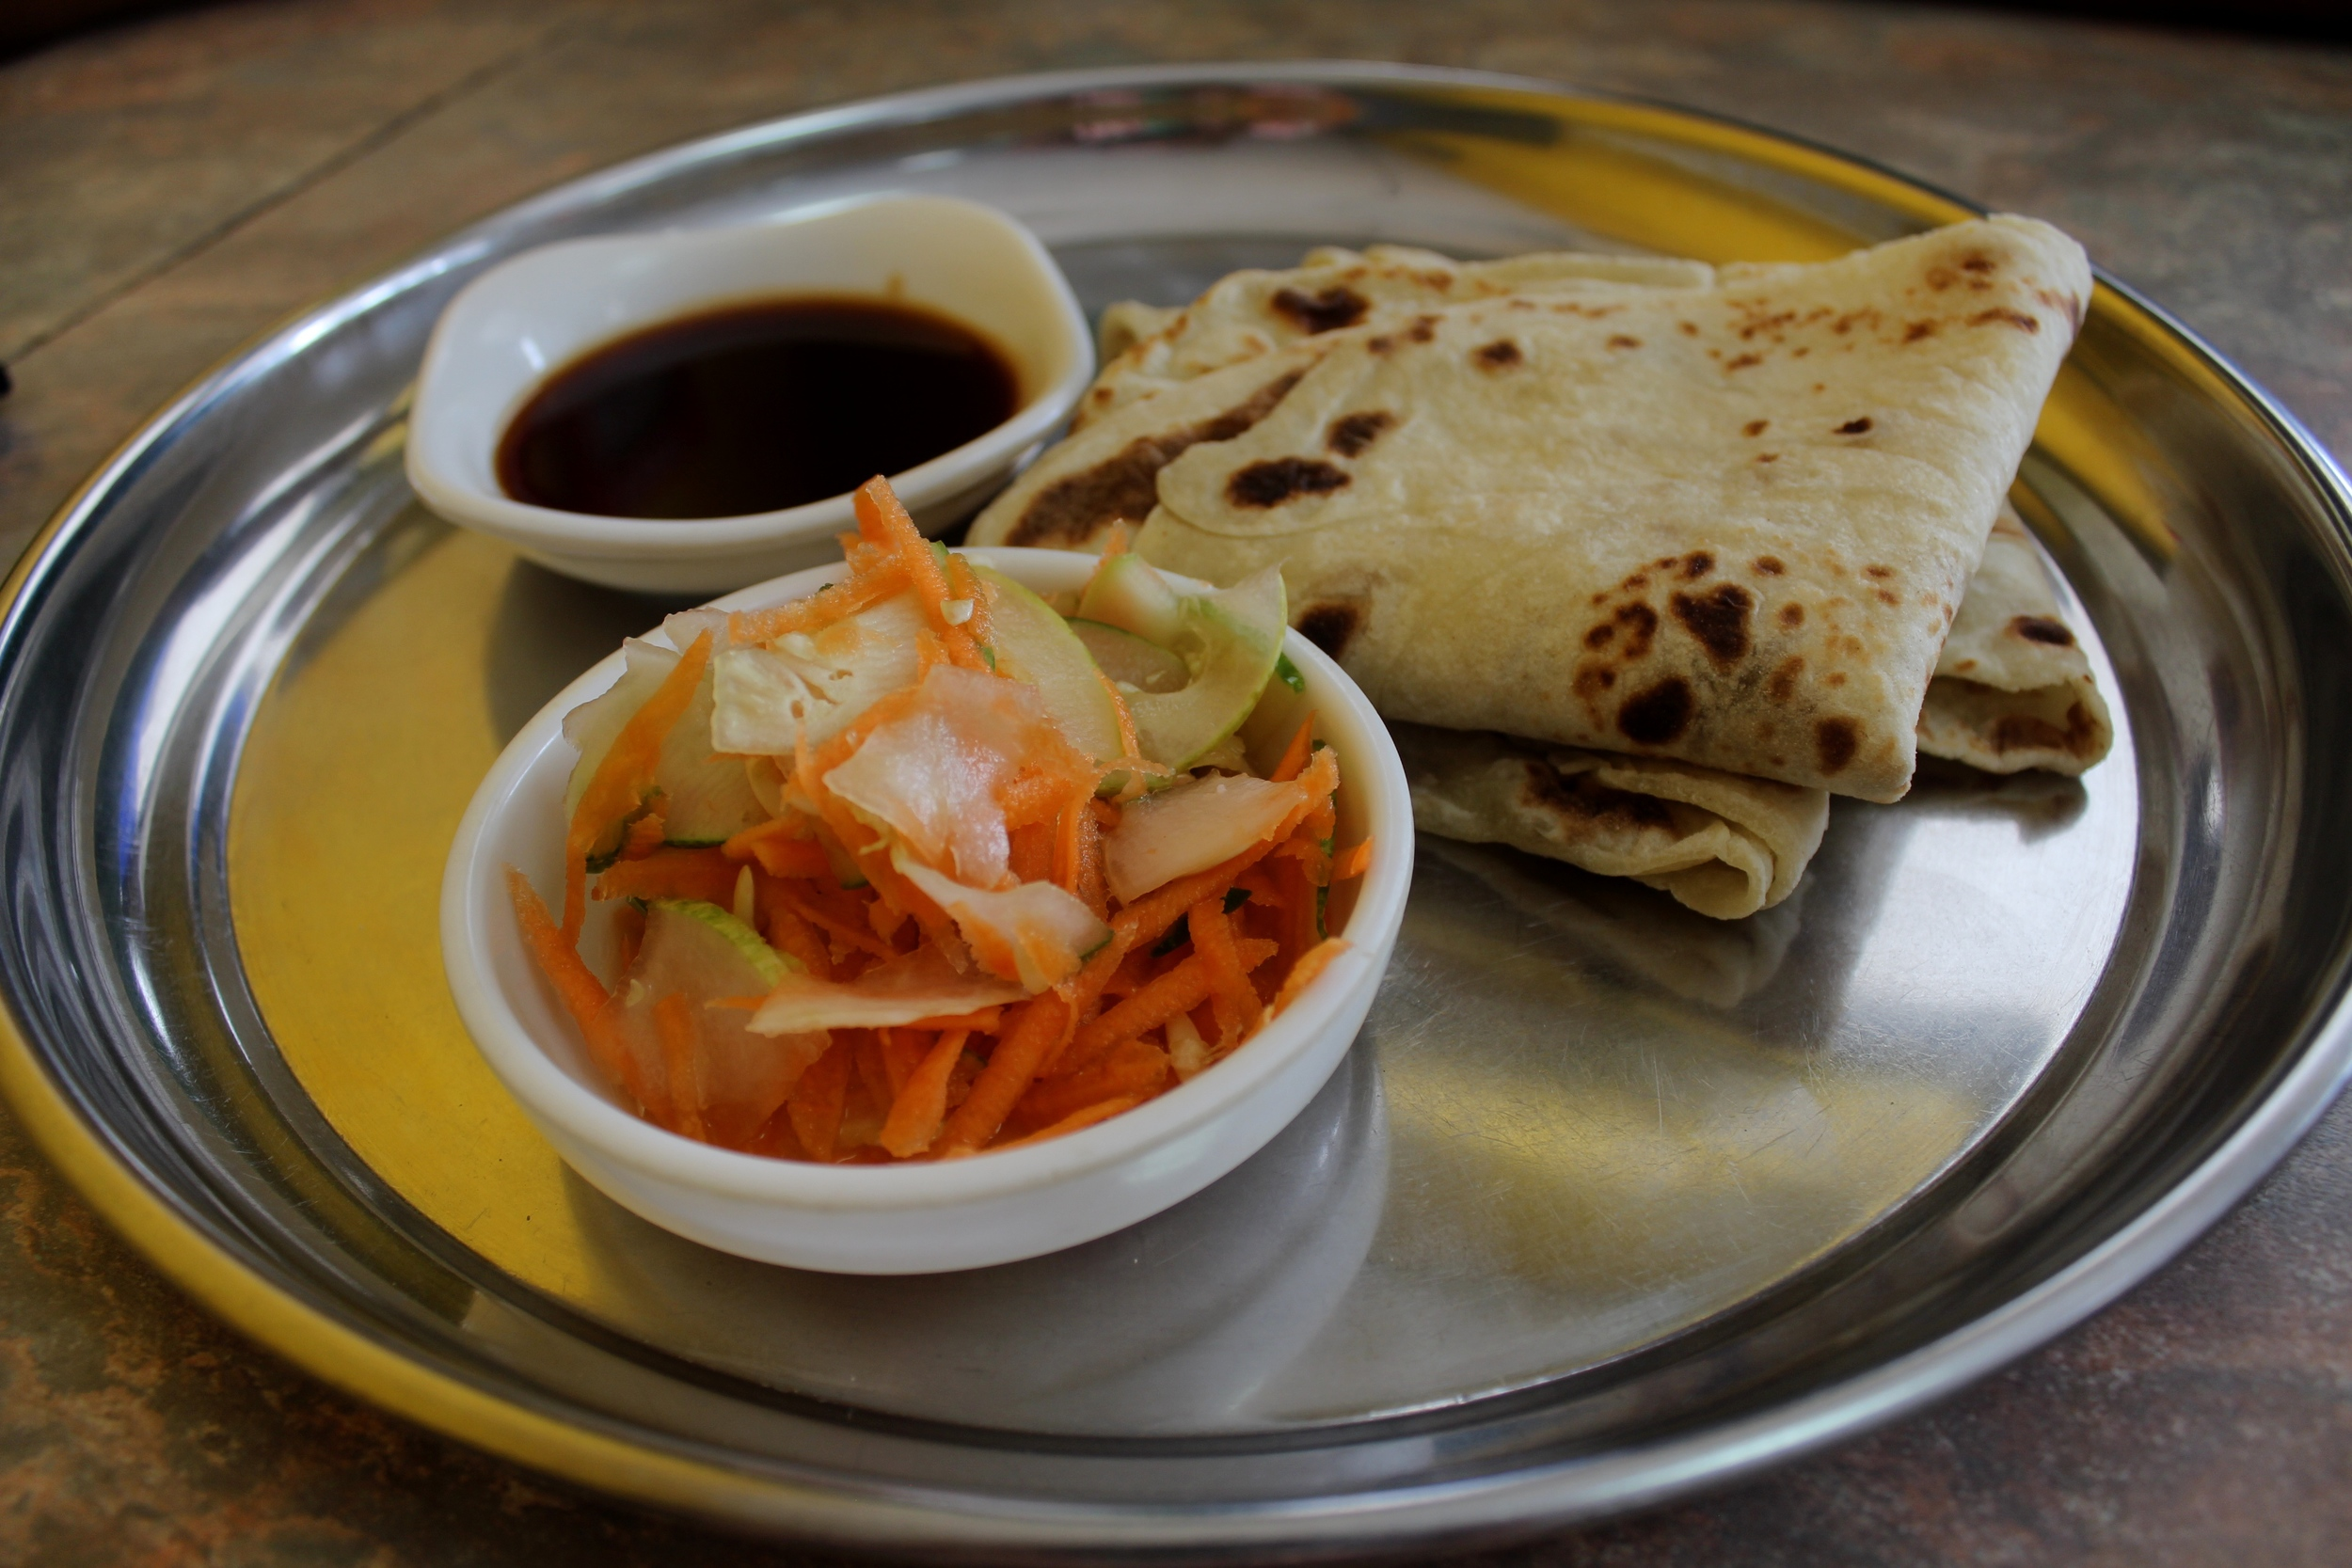 Roti, salad and tamarind chutney